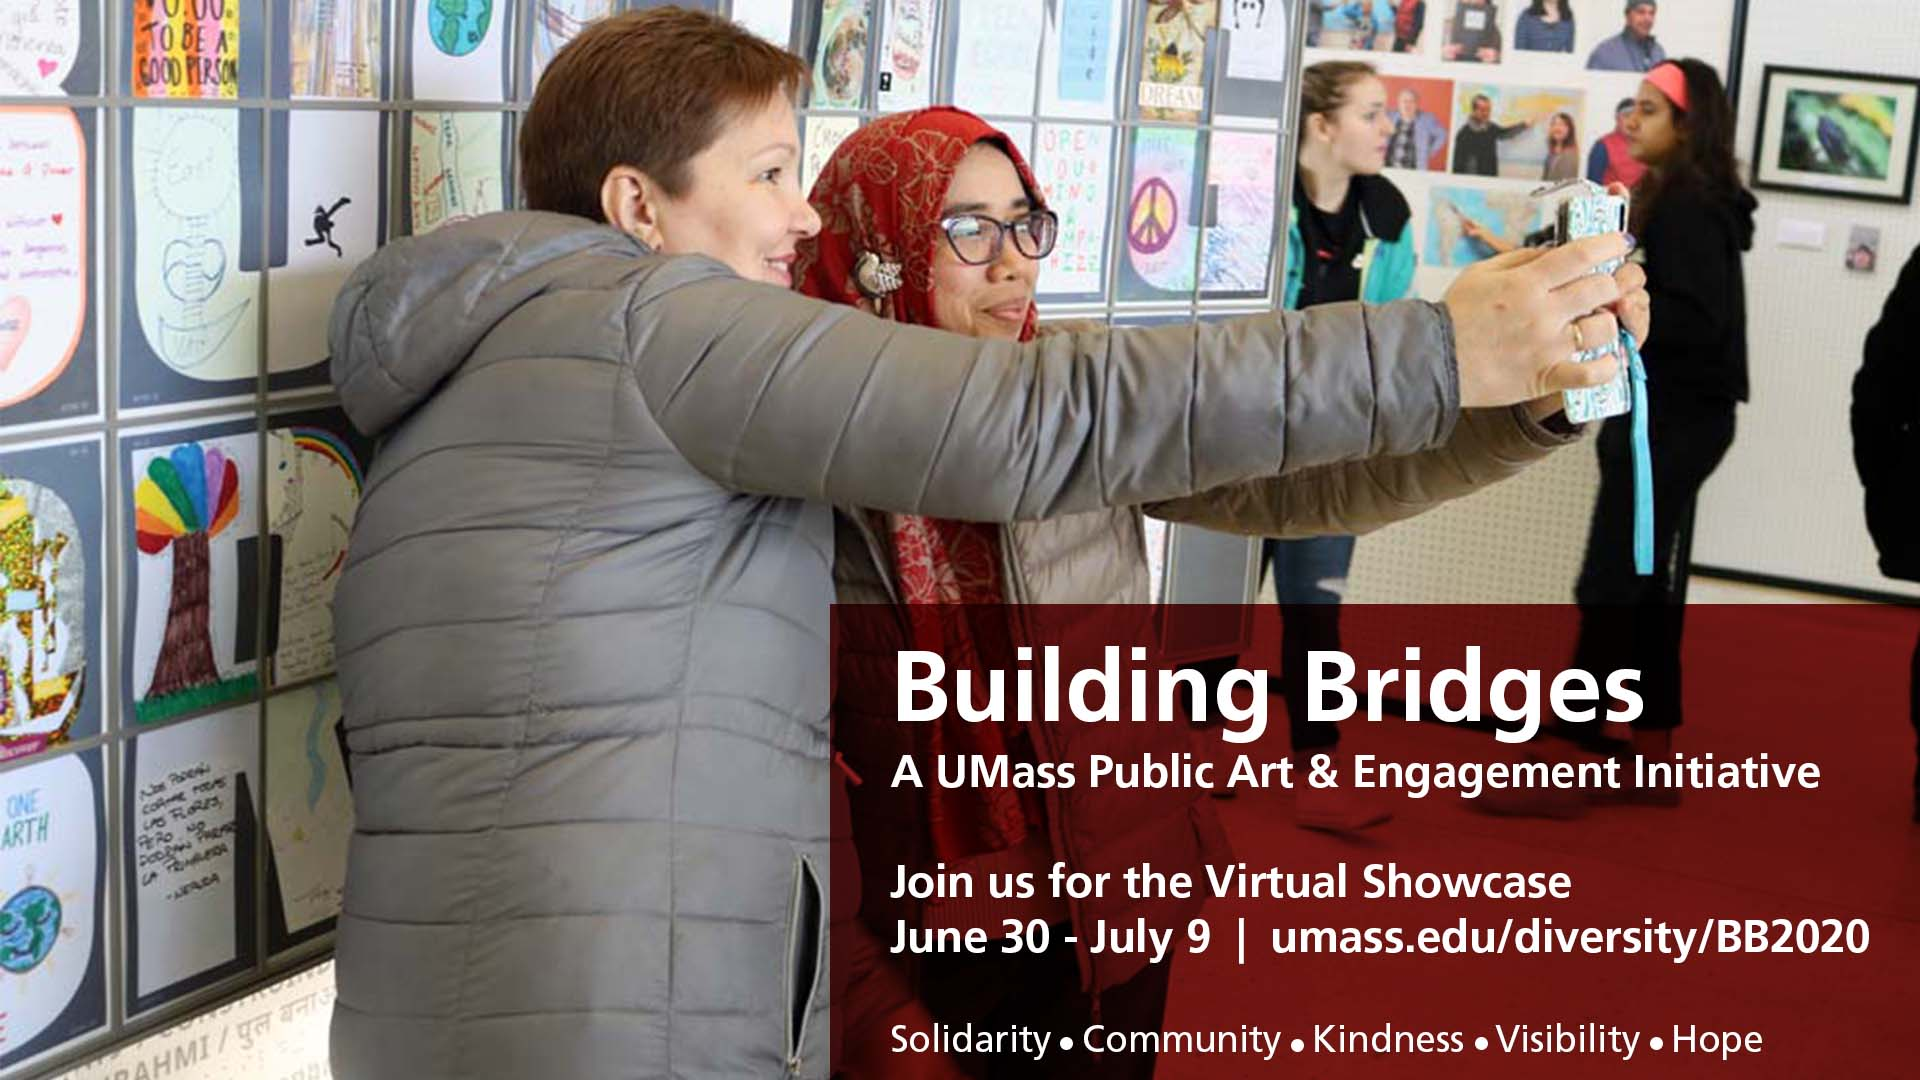 Building Bridges flyer image depicting two women, one wearing a gray coat and the other wearing a red hijab, smiling while taking a selfie.